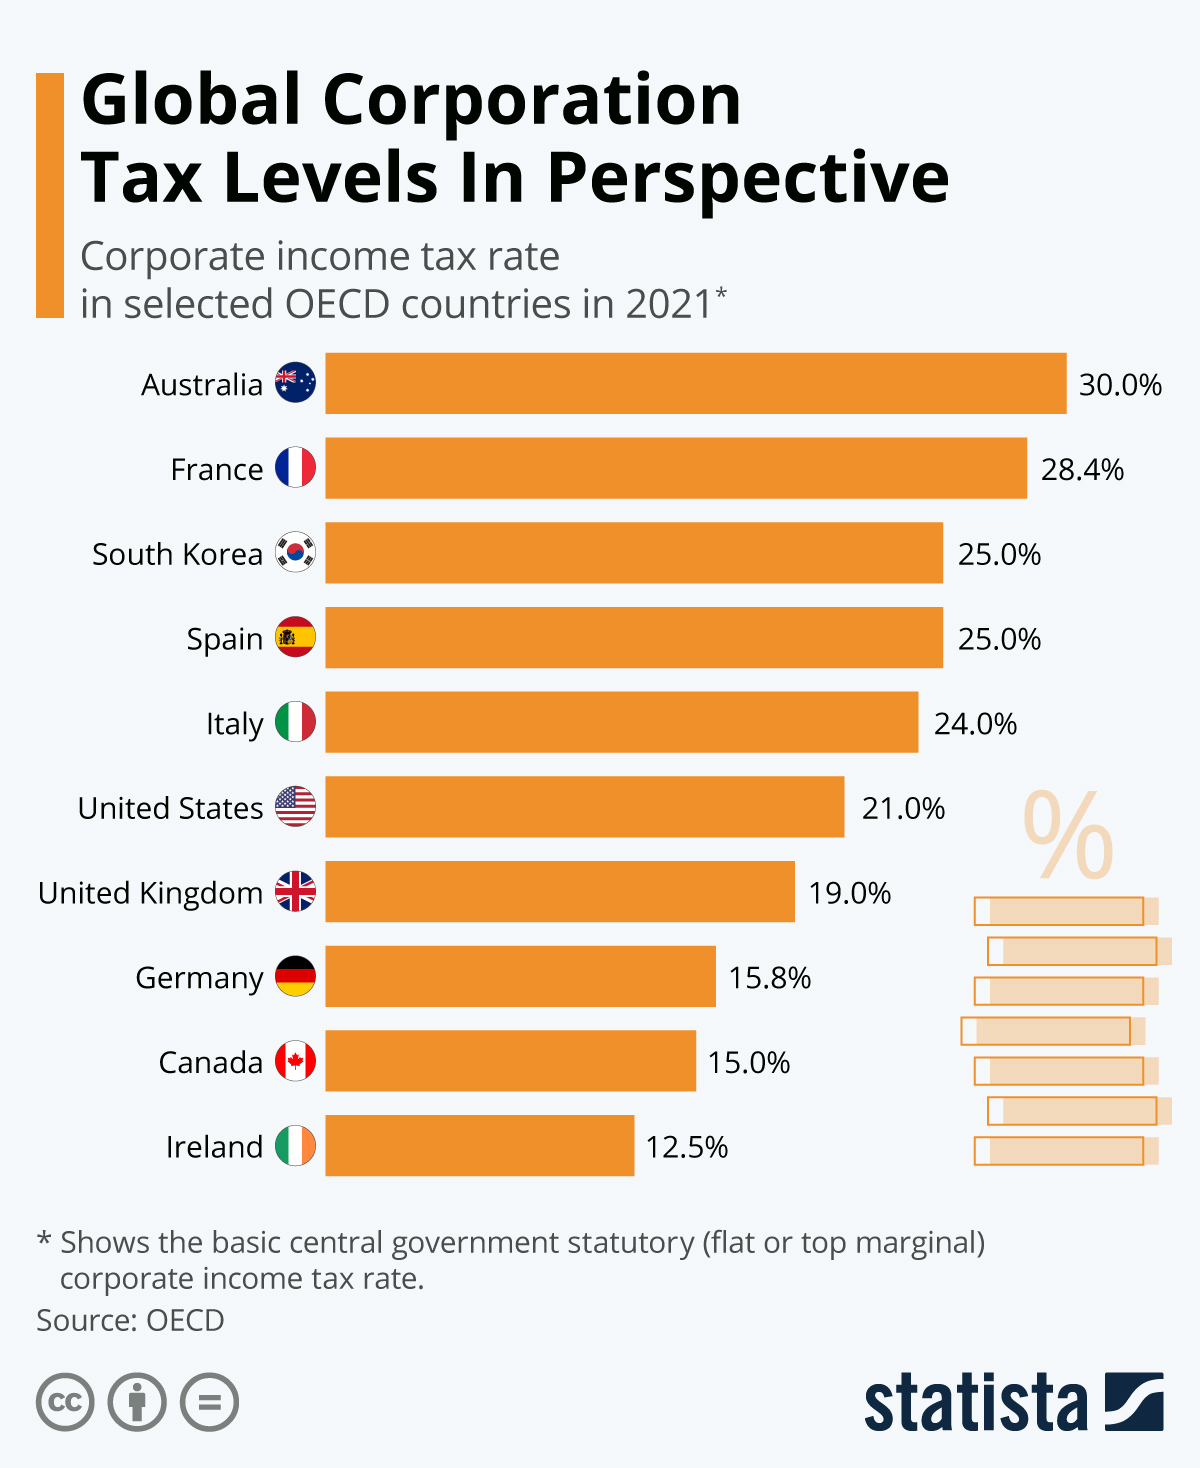 Global corporation tax in perspective